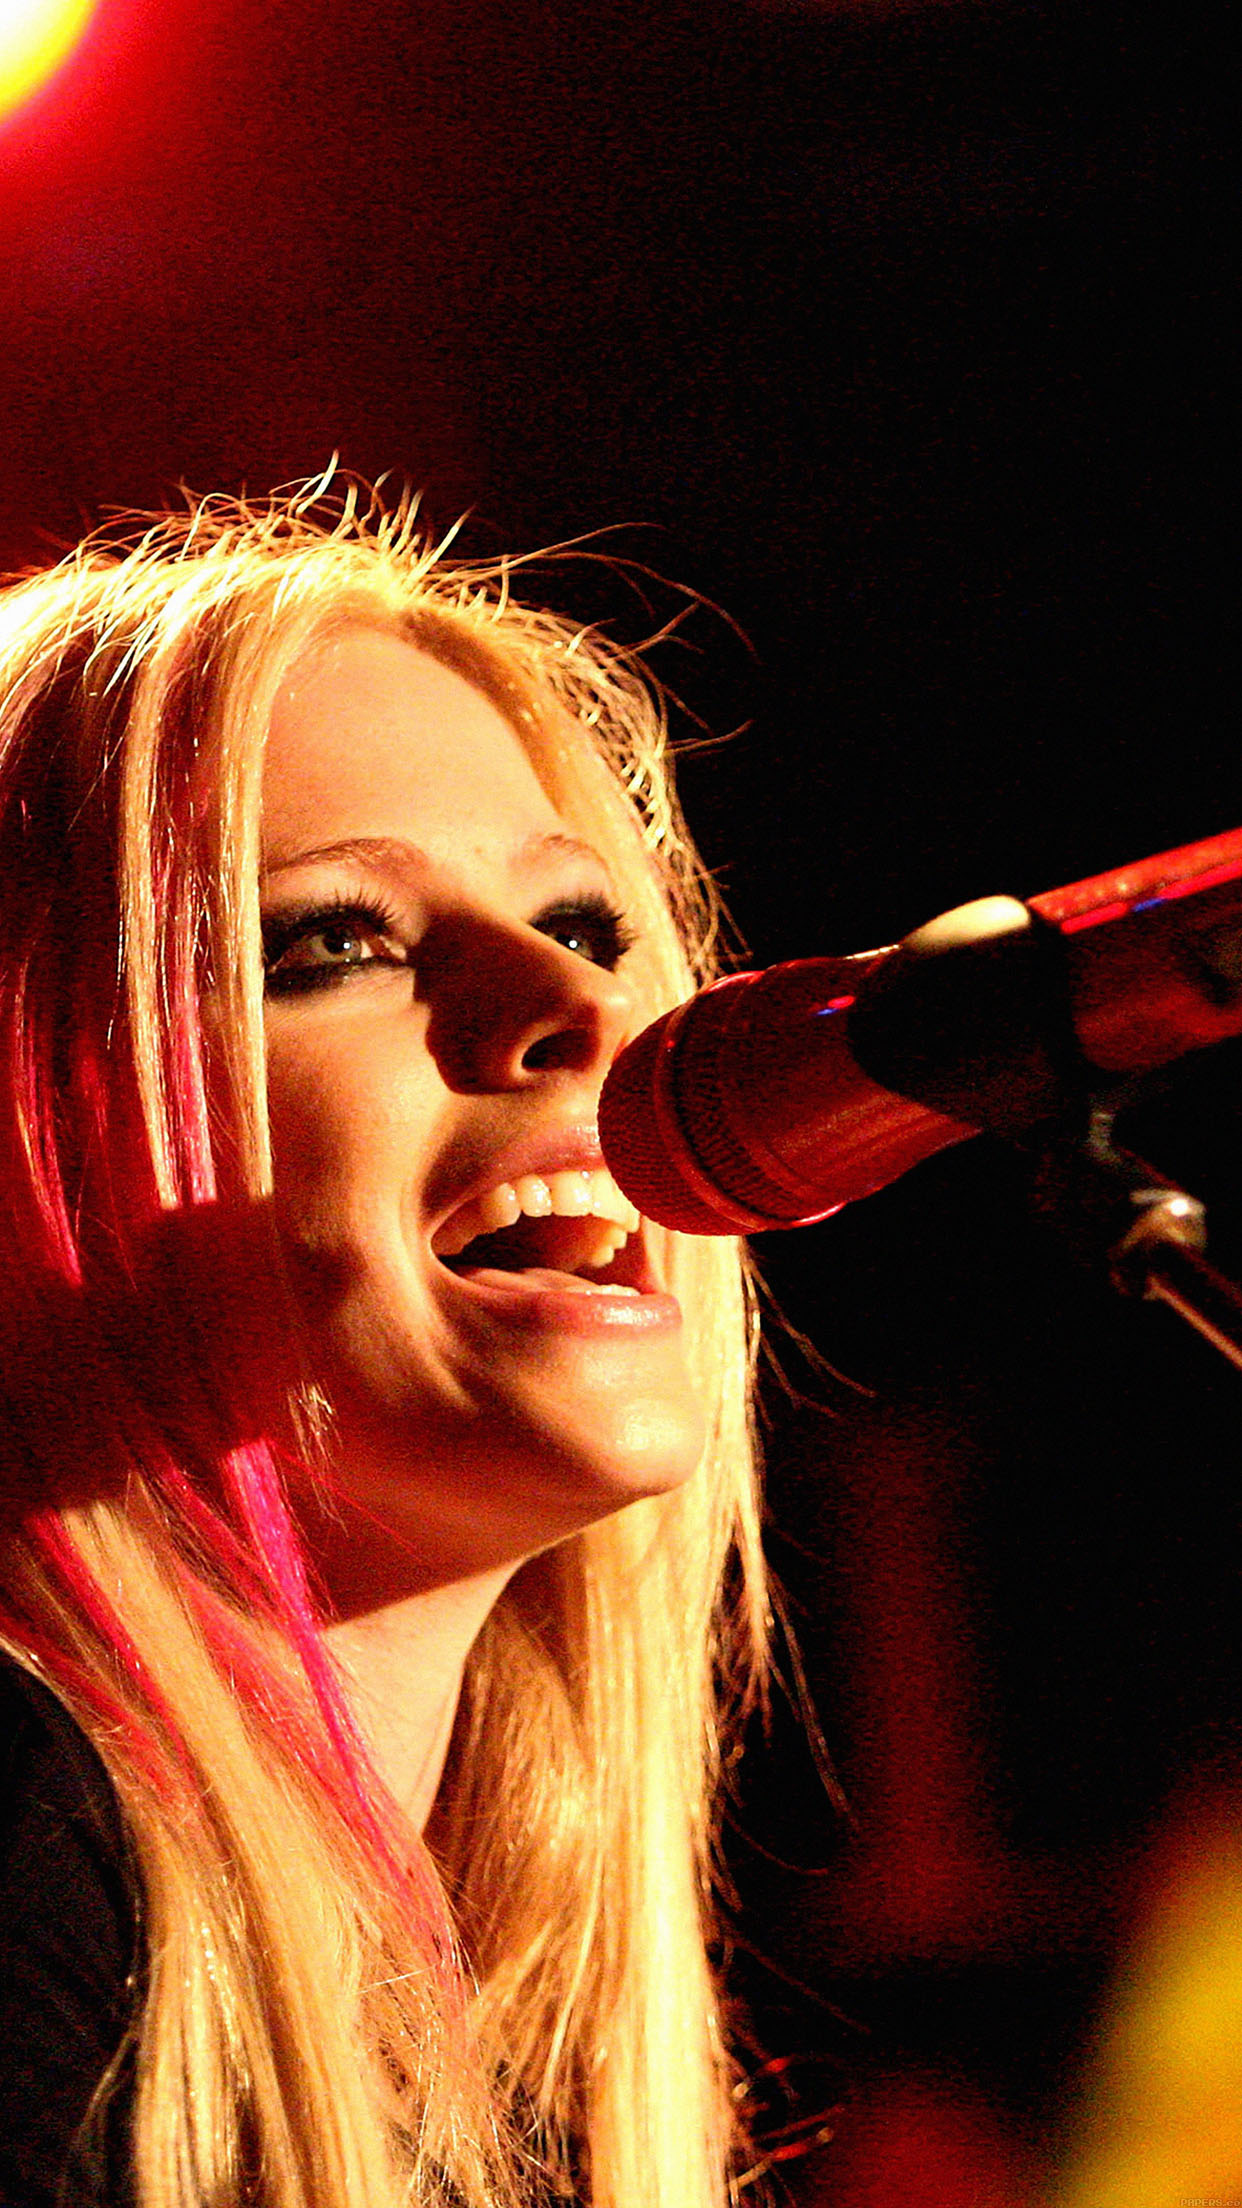 Anime Beach Wallpaper Wallpaper Avril Lavigne Sing Concert Android Wallpaper